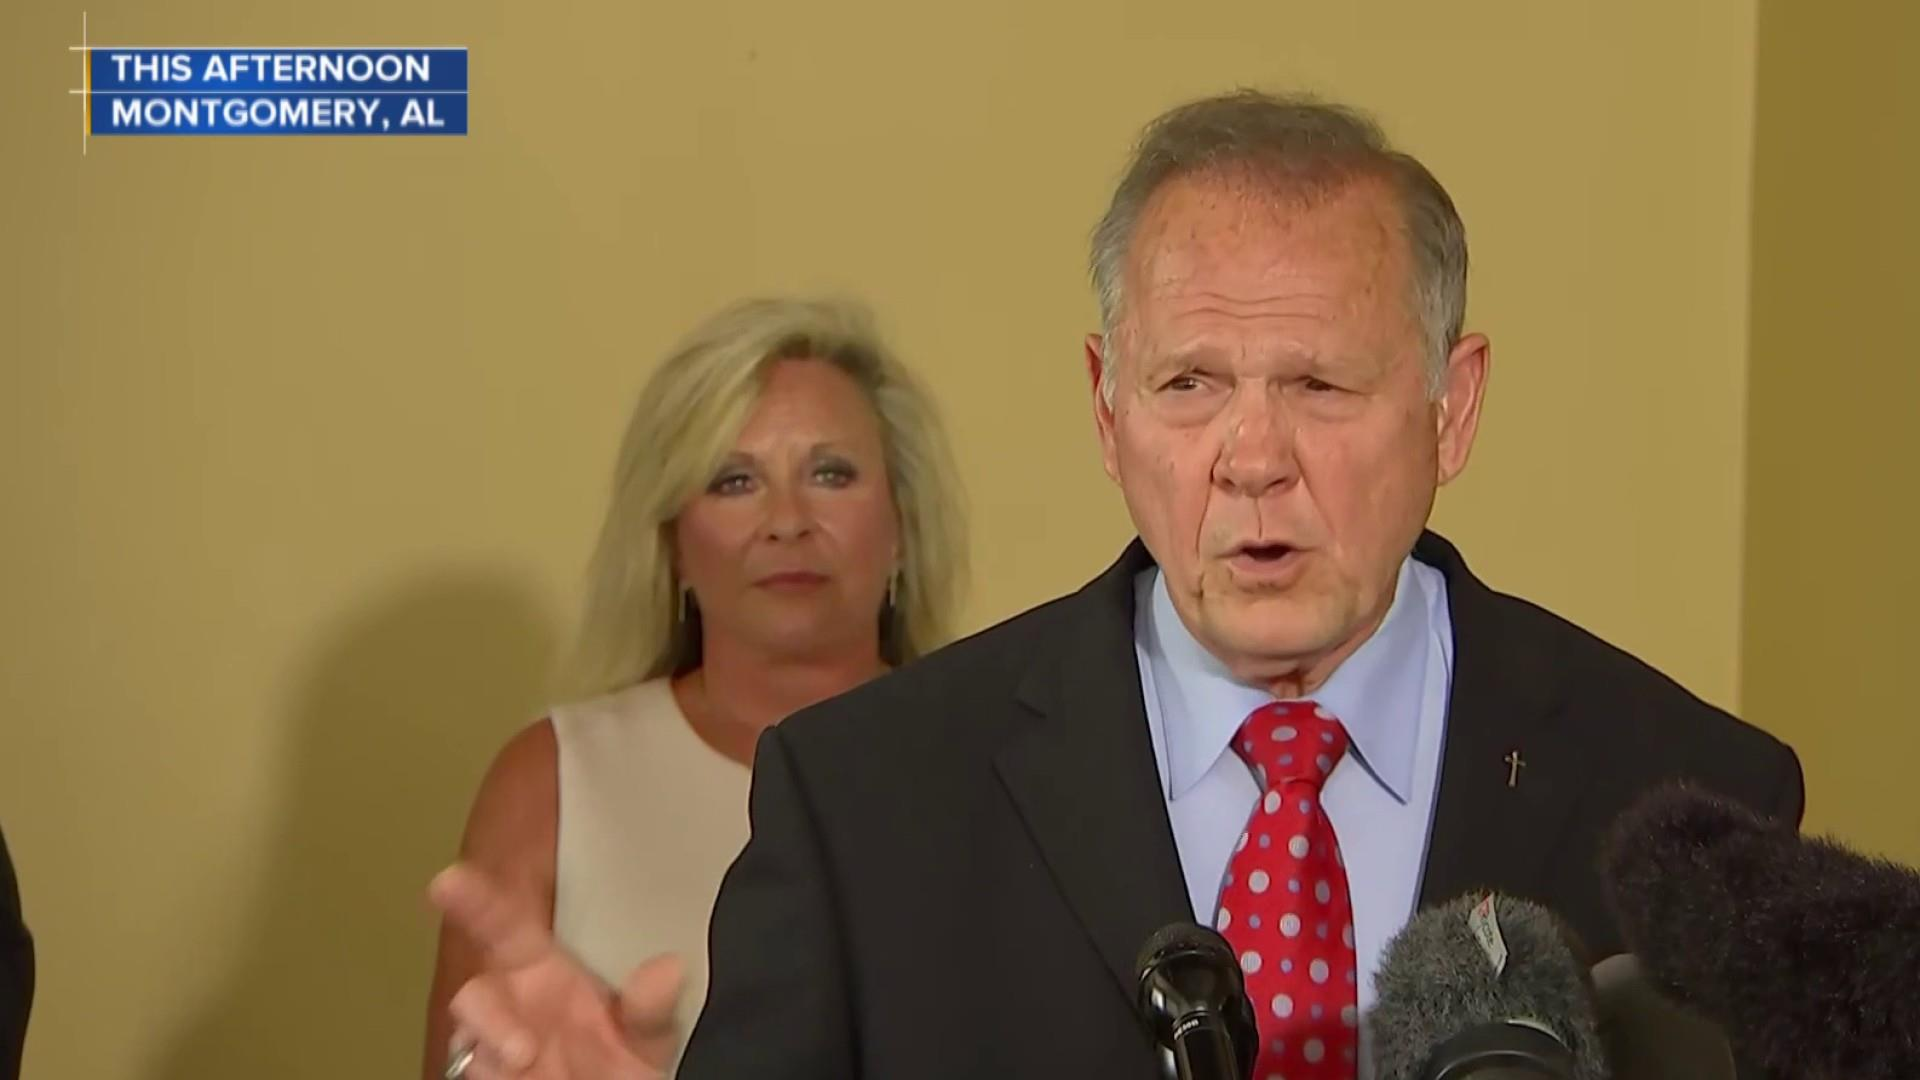 Roy Moore announces another Senate run after losing amid sexual misconduct allegations